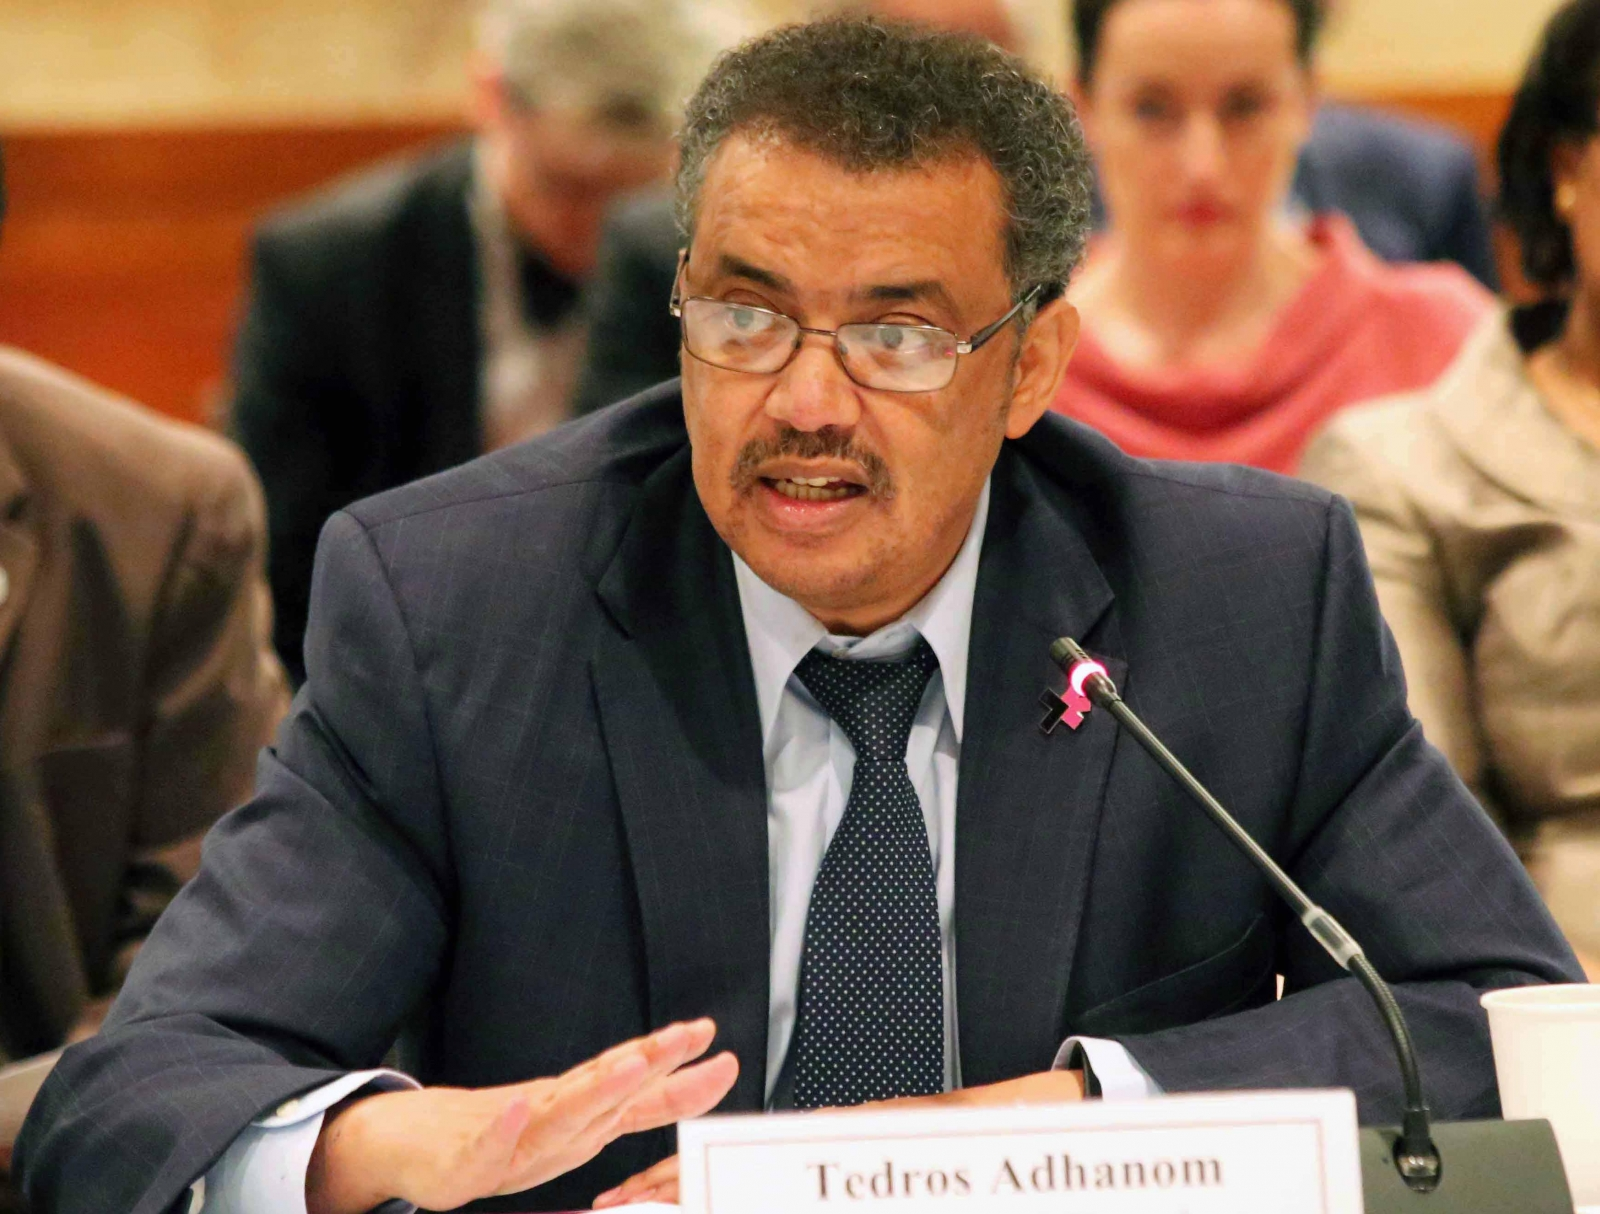 Tedros' Mugabe blunder should not be detrimental to Africa's role in any international organization